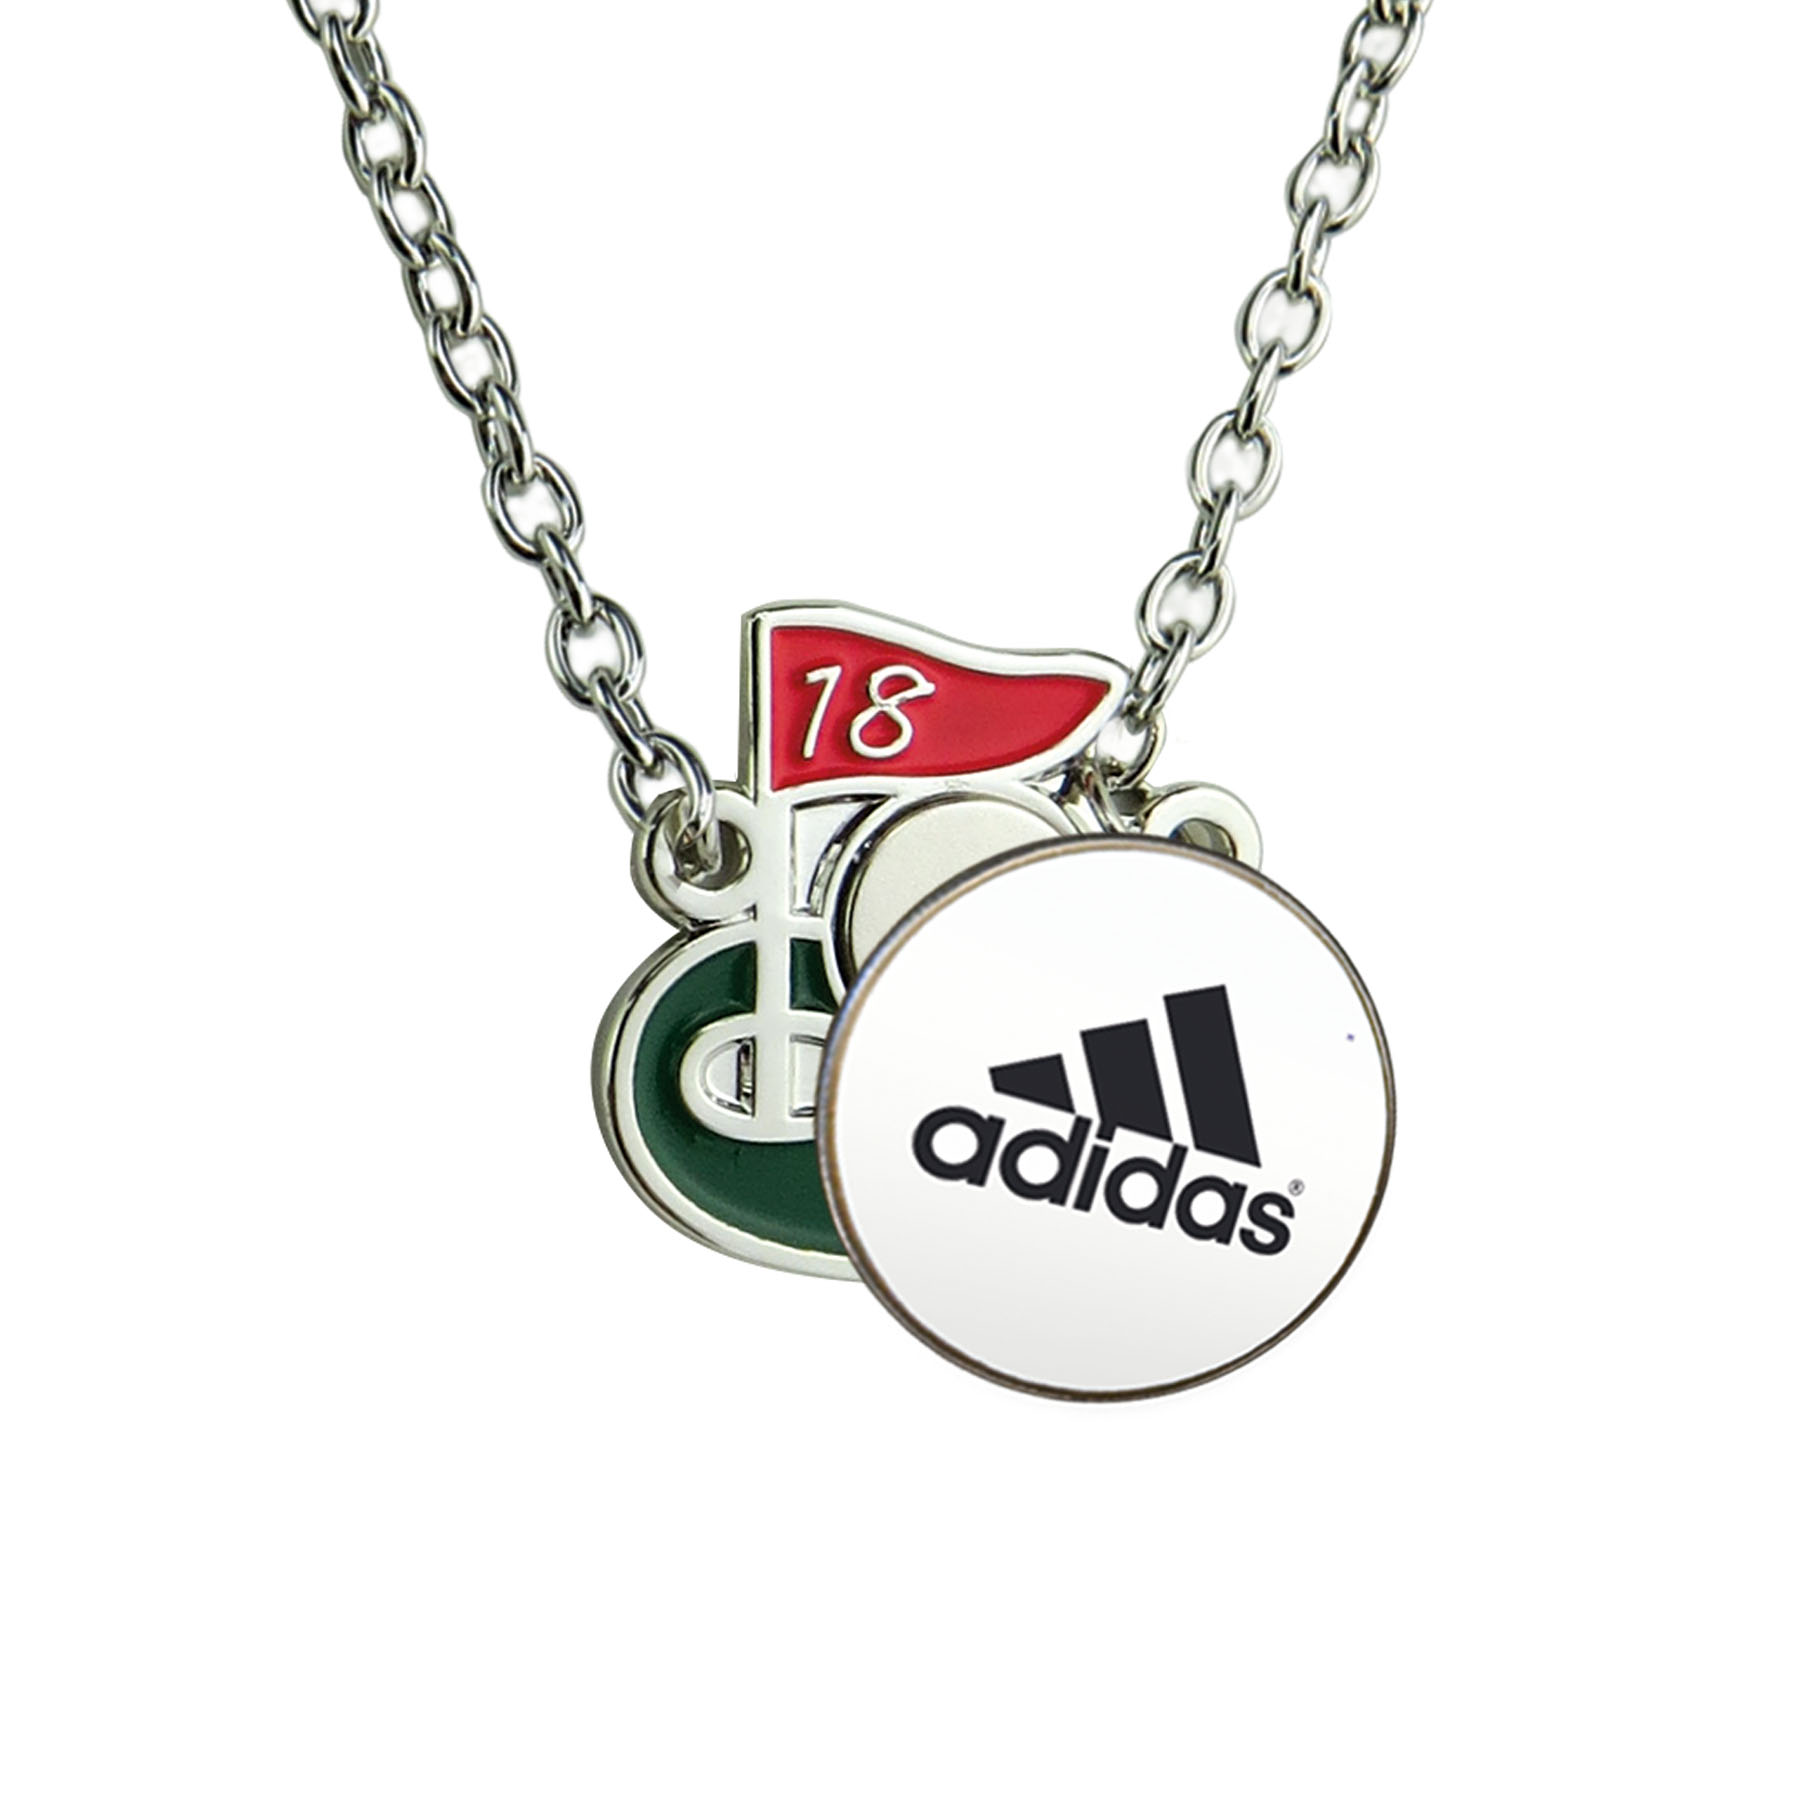 Magnetic Golf Necklaces